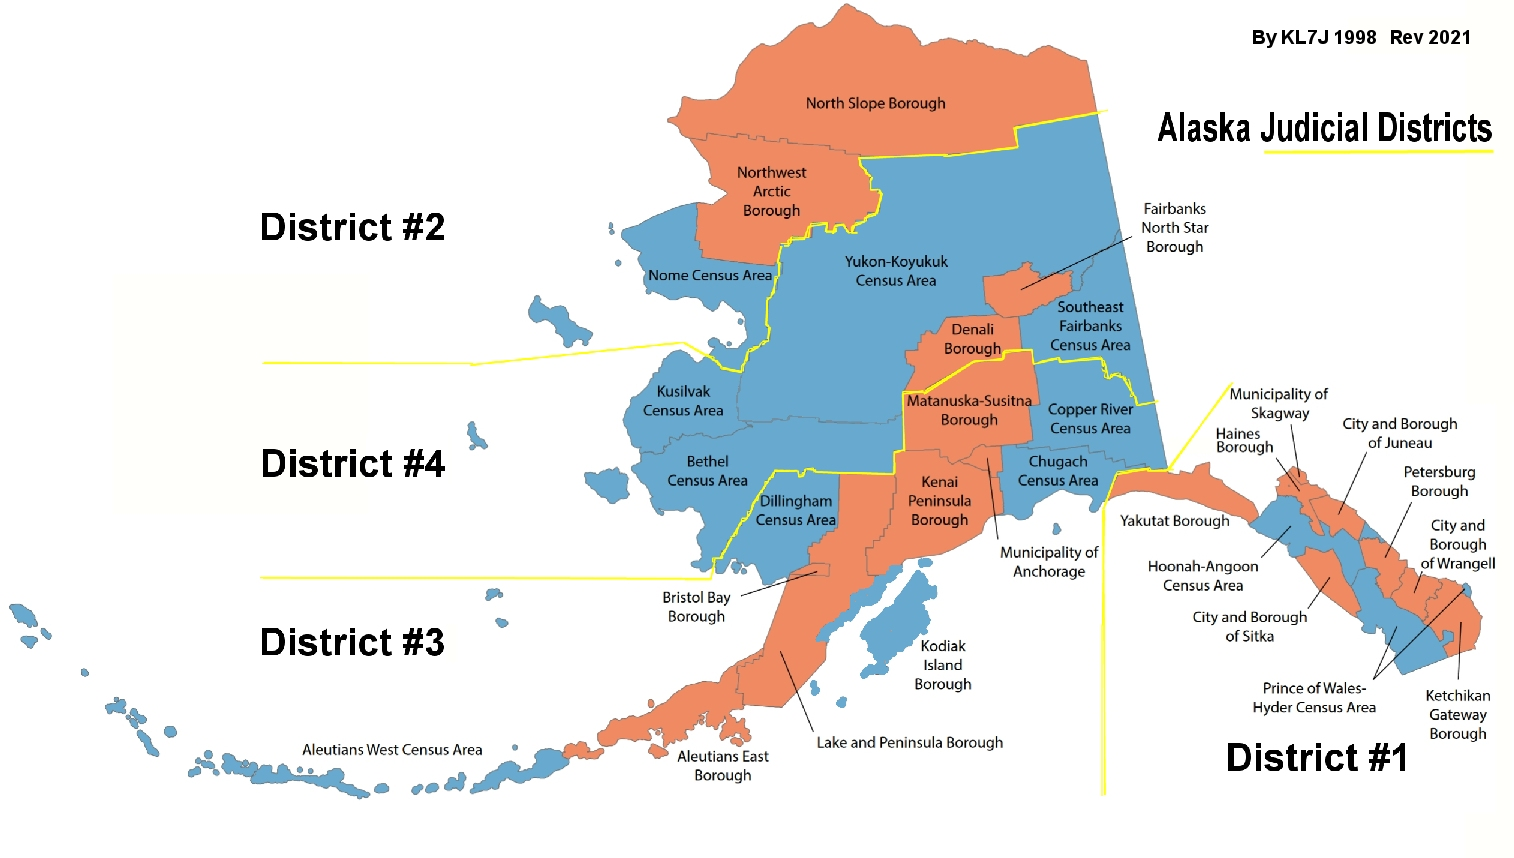 Alaska Judicial Districts And County Hunting By Kl7j